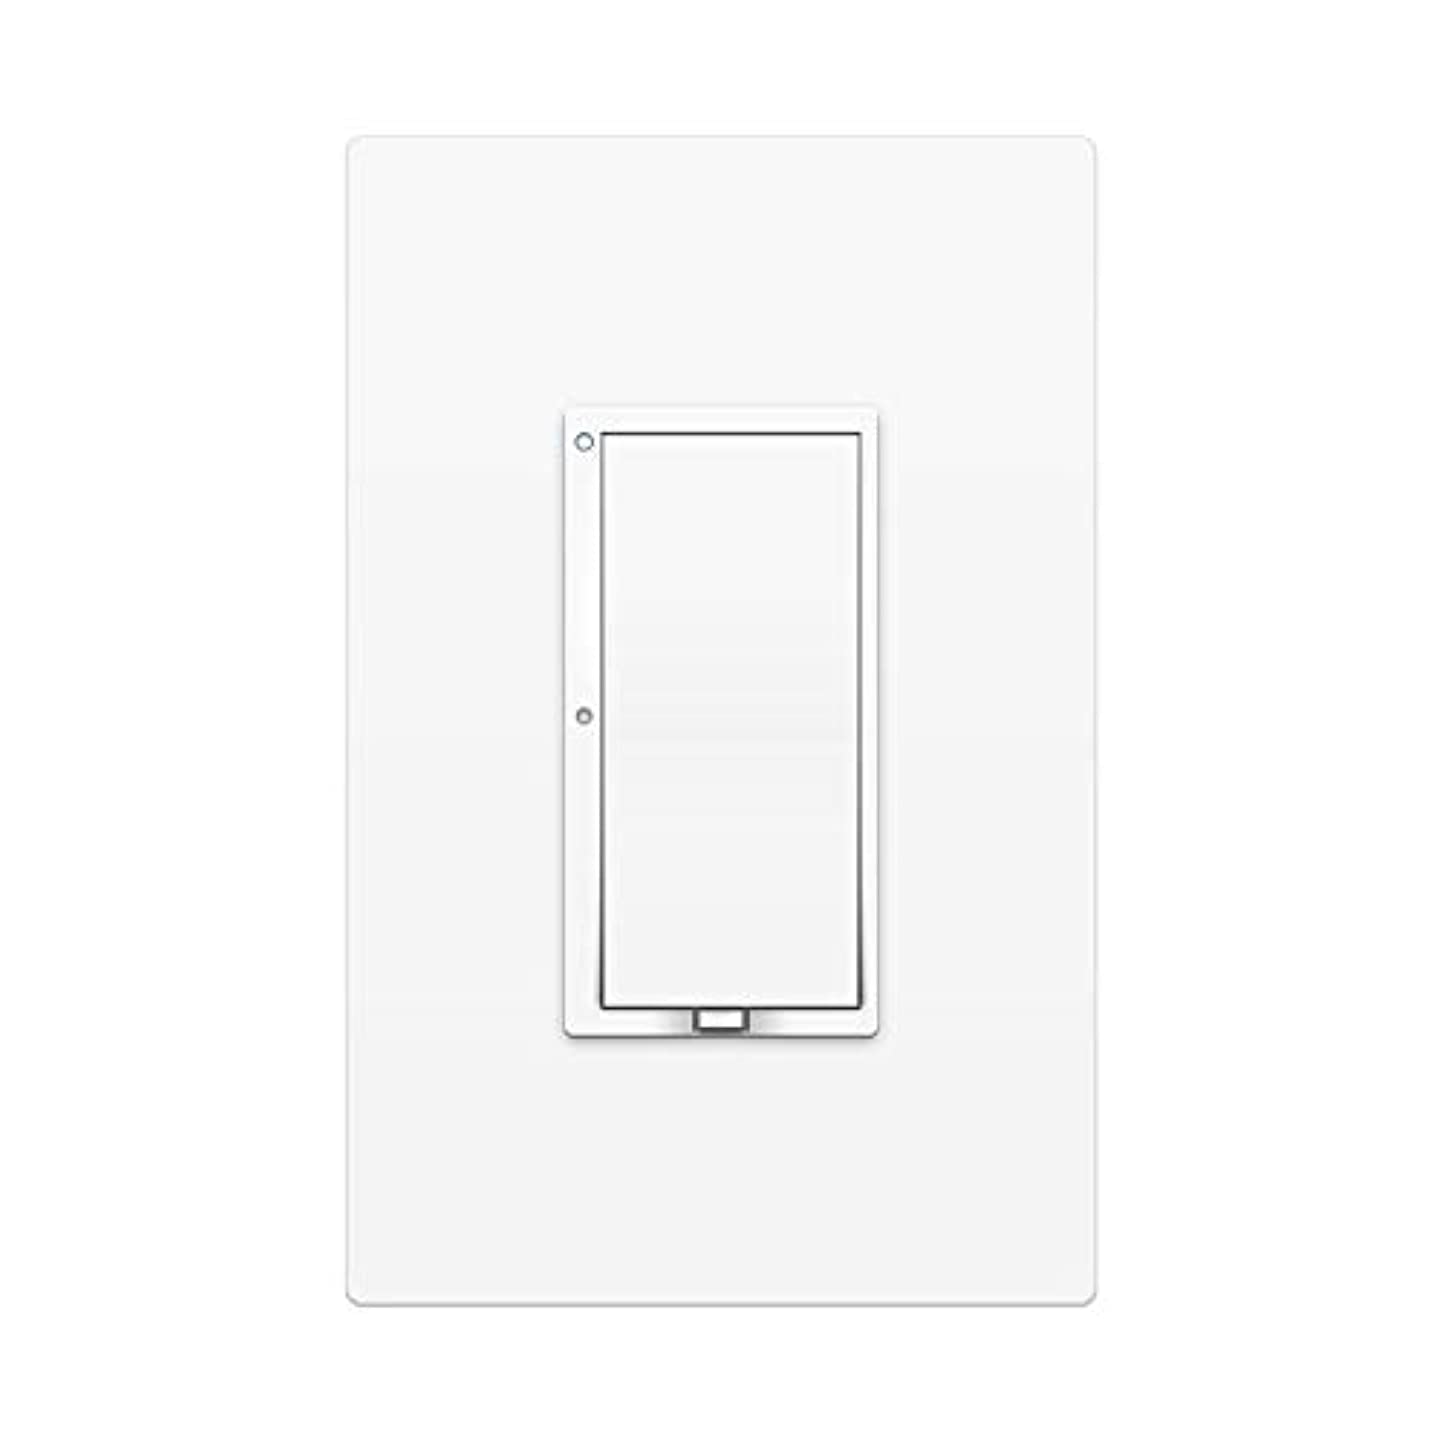 Insteon 2477S On/off On/off Switch (white), syxuelznyks7